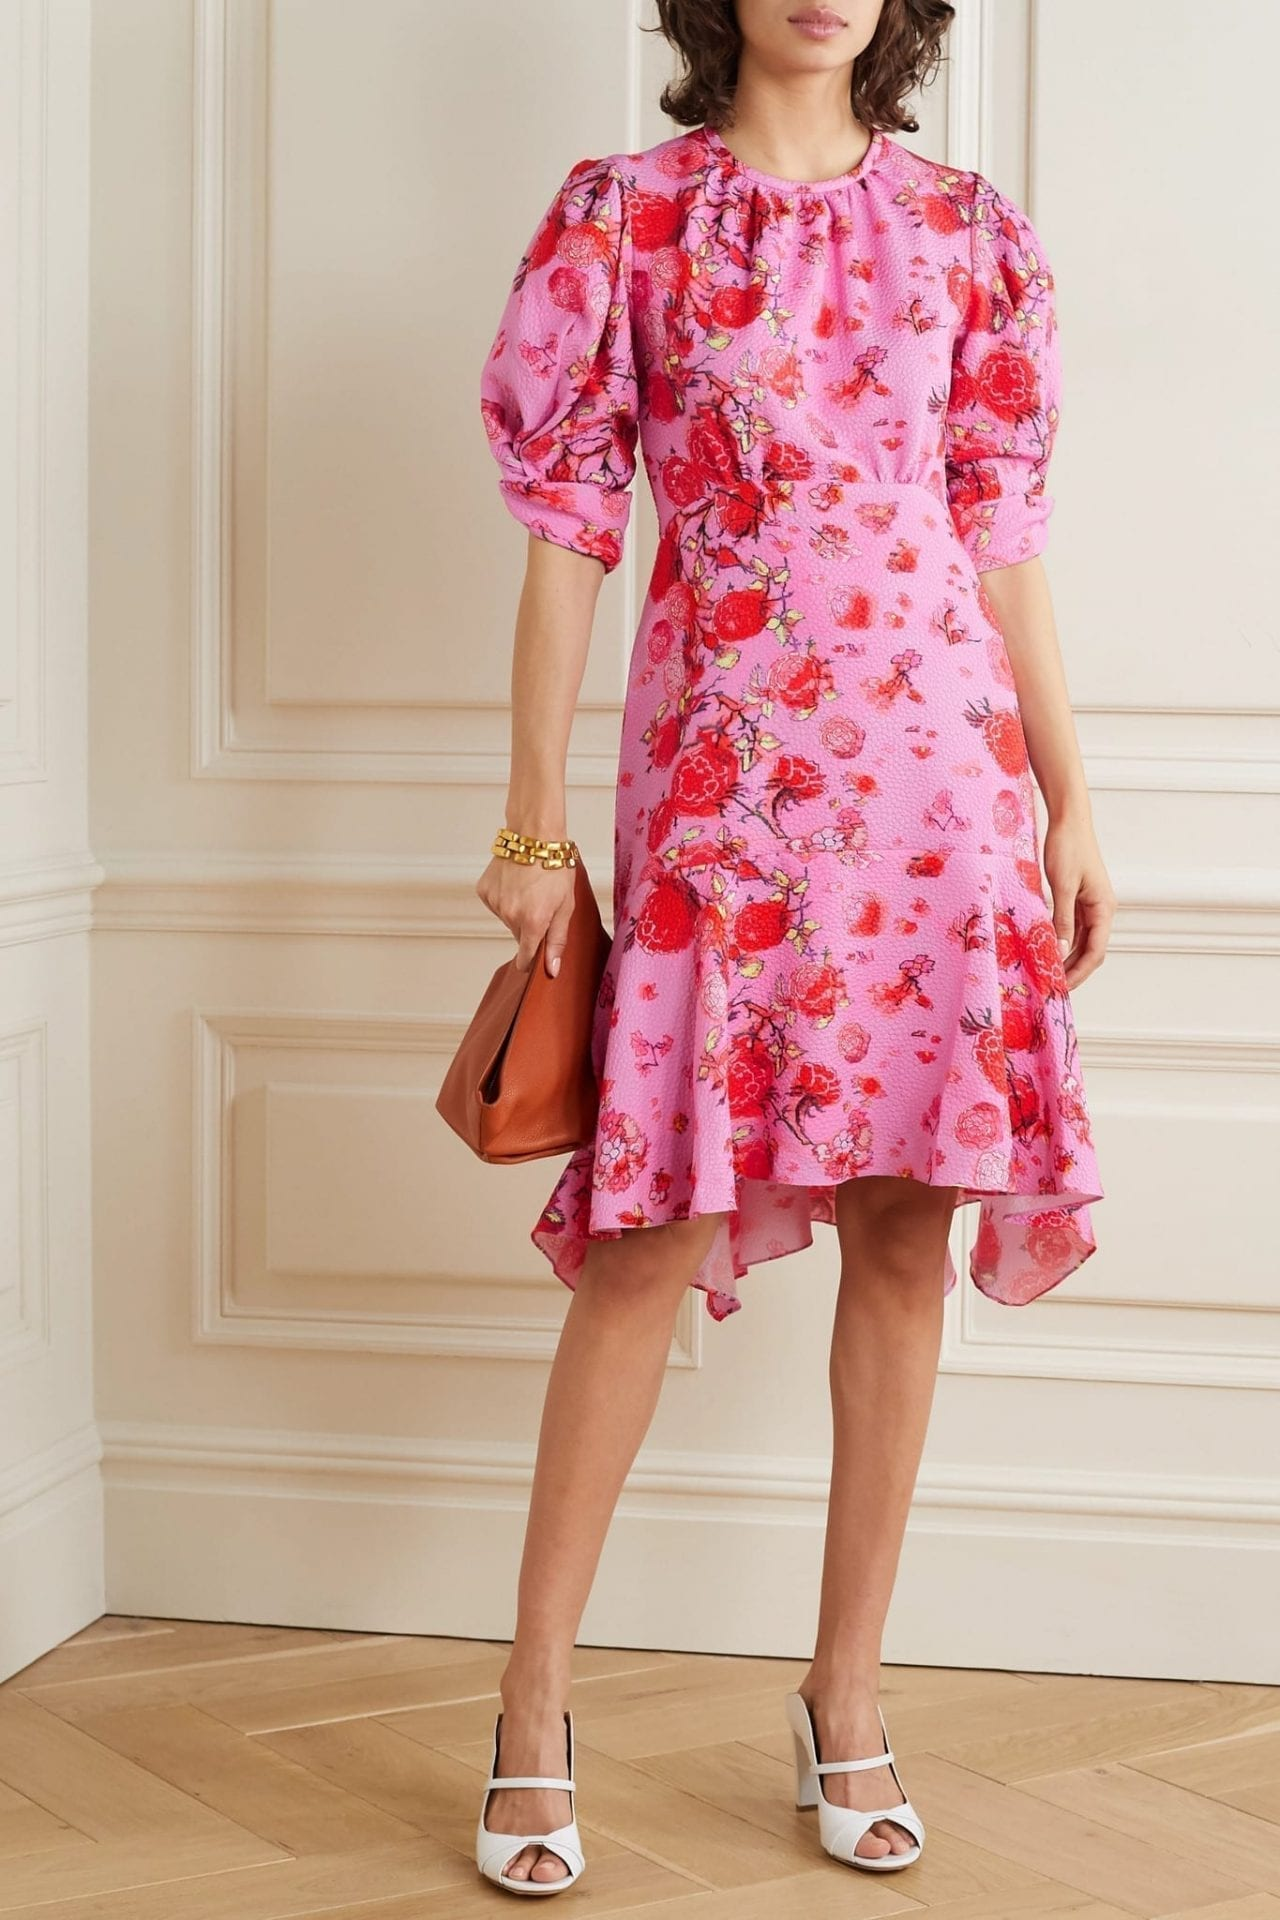 PETER PILOTTO Ruffled Floral-print Jacquard Dress